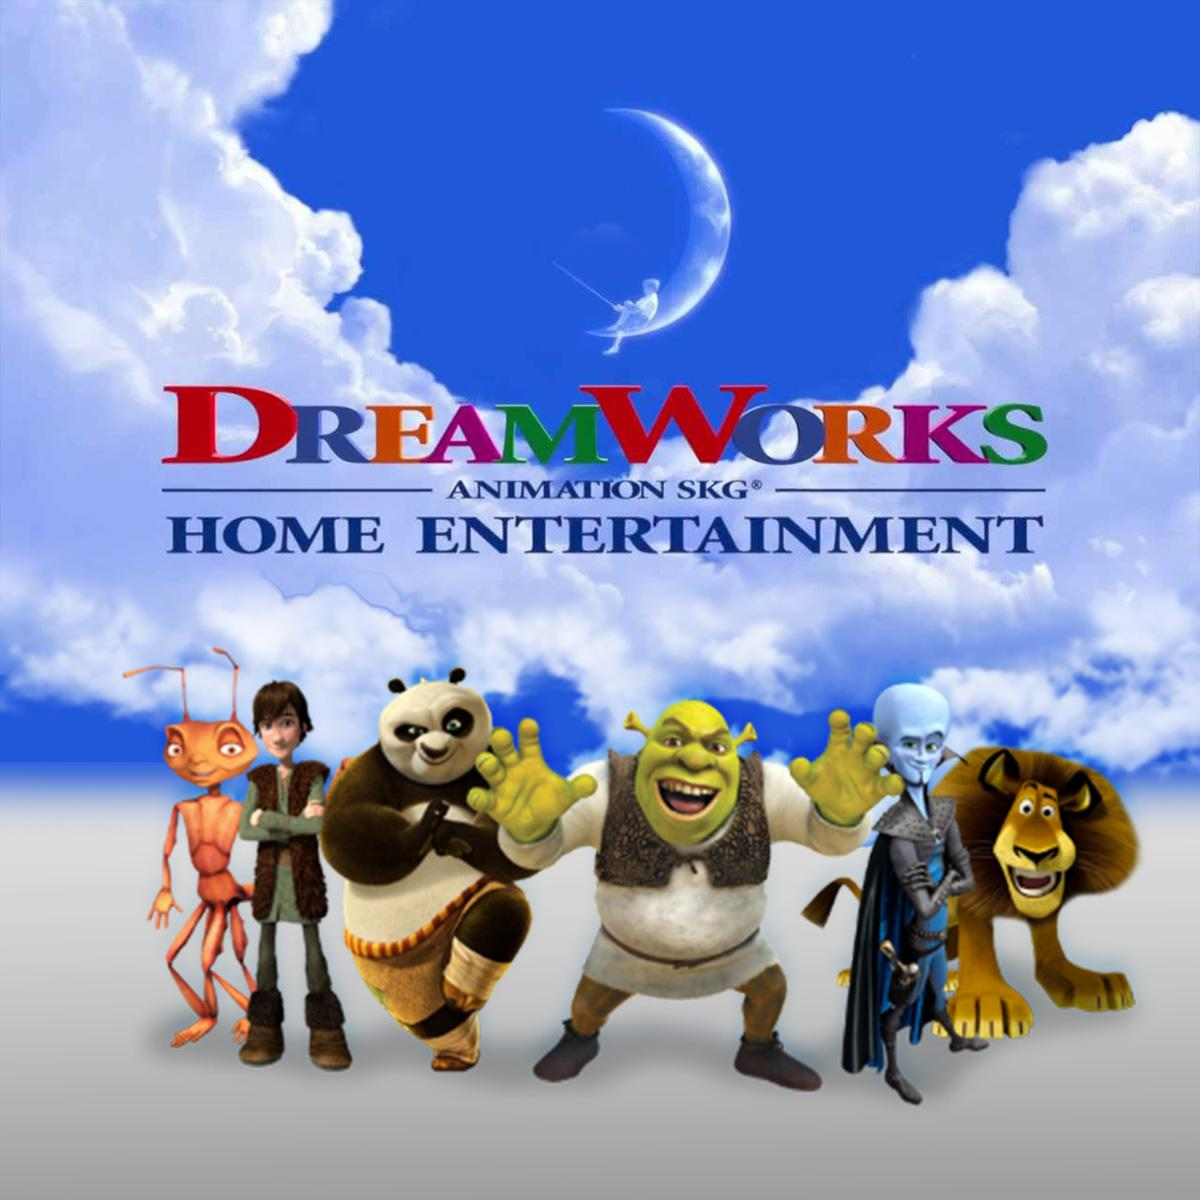 203 Best Images About Disney Pixar Dreamworks On: DreamWorks Animation To Cease India Operations Early Next